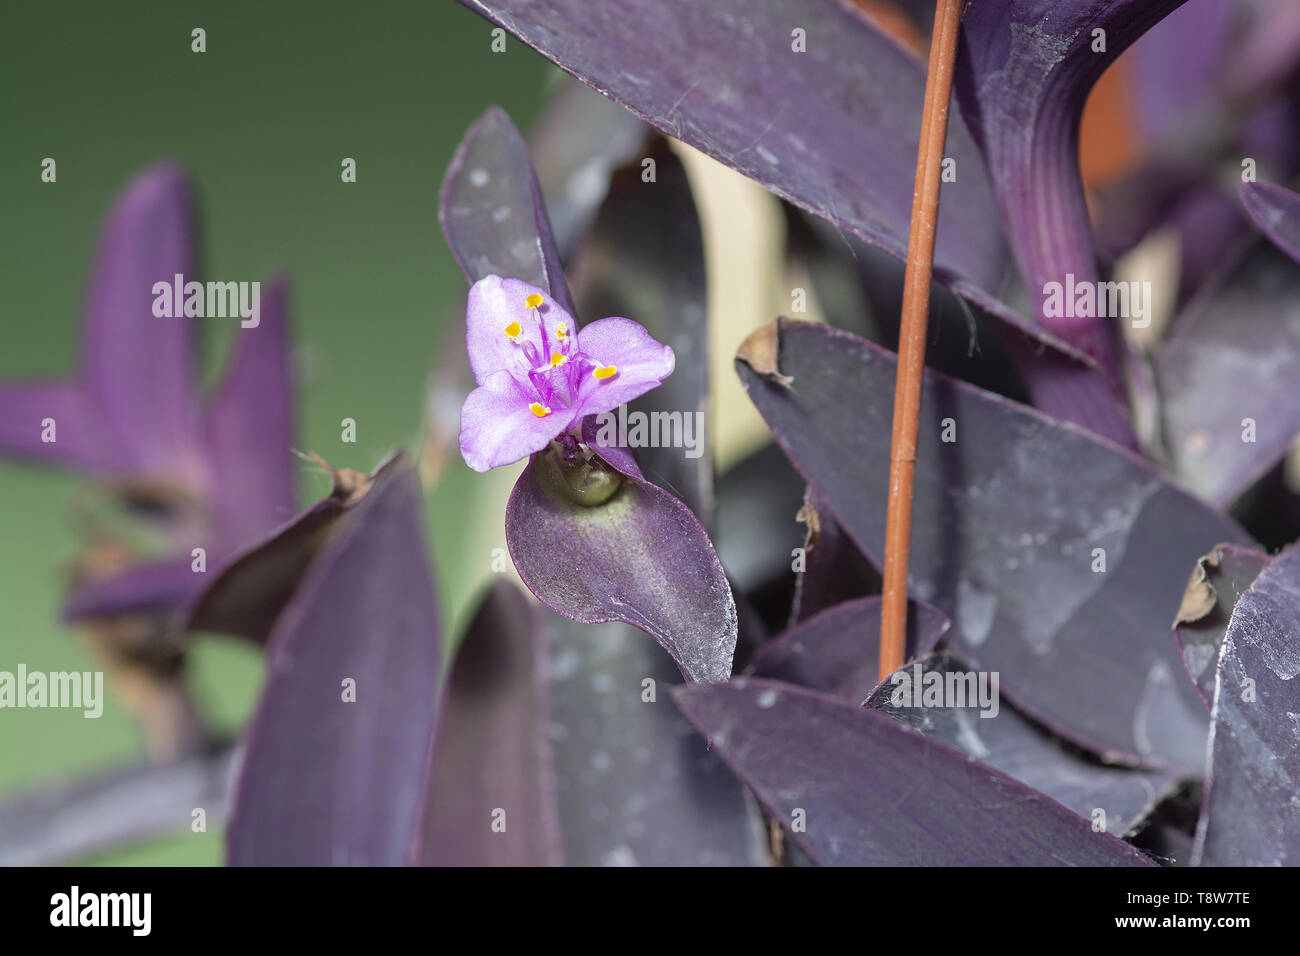 Purple tradescantia plant with pink little flower closeup macro photo. Other names are wandering jew or purple queen - Stock Image